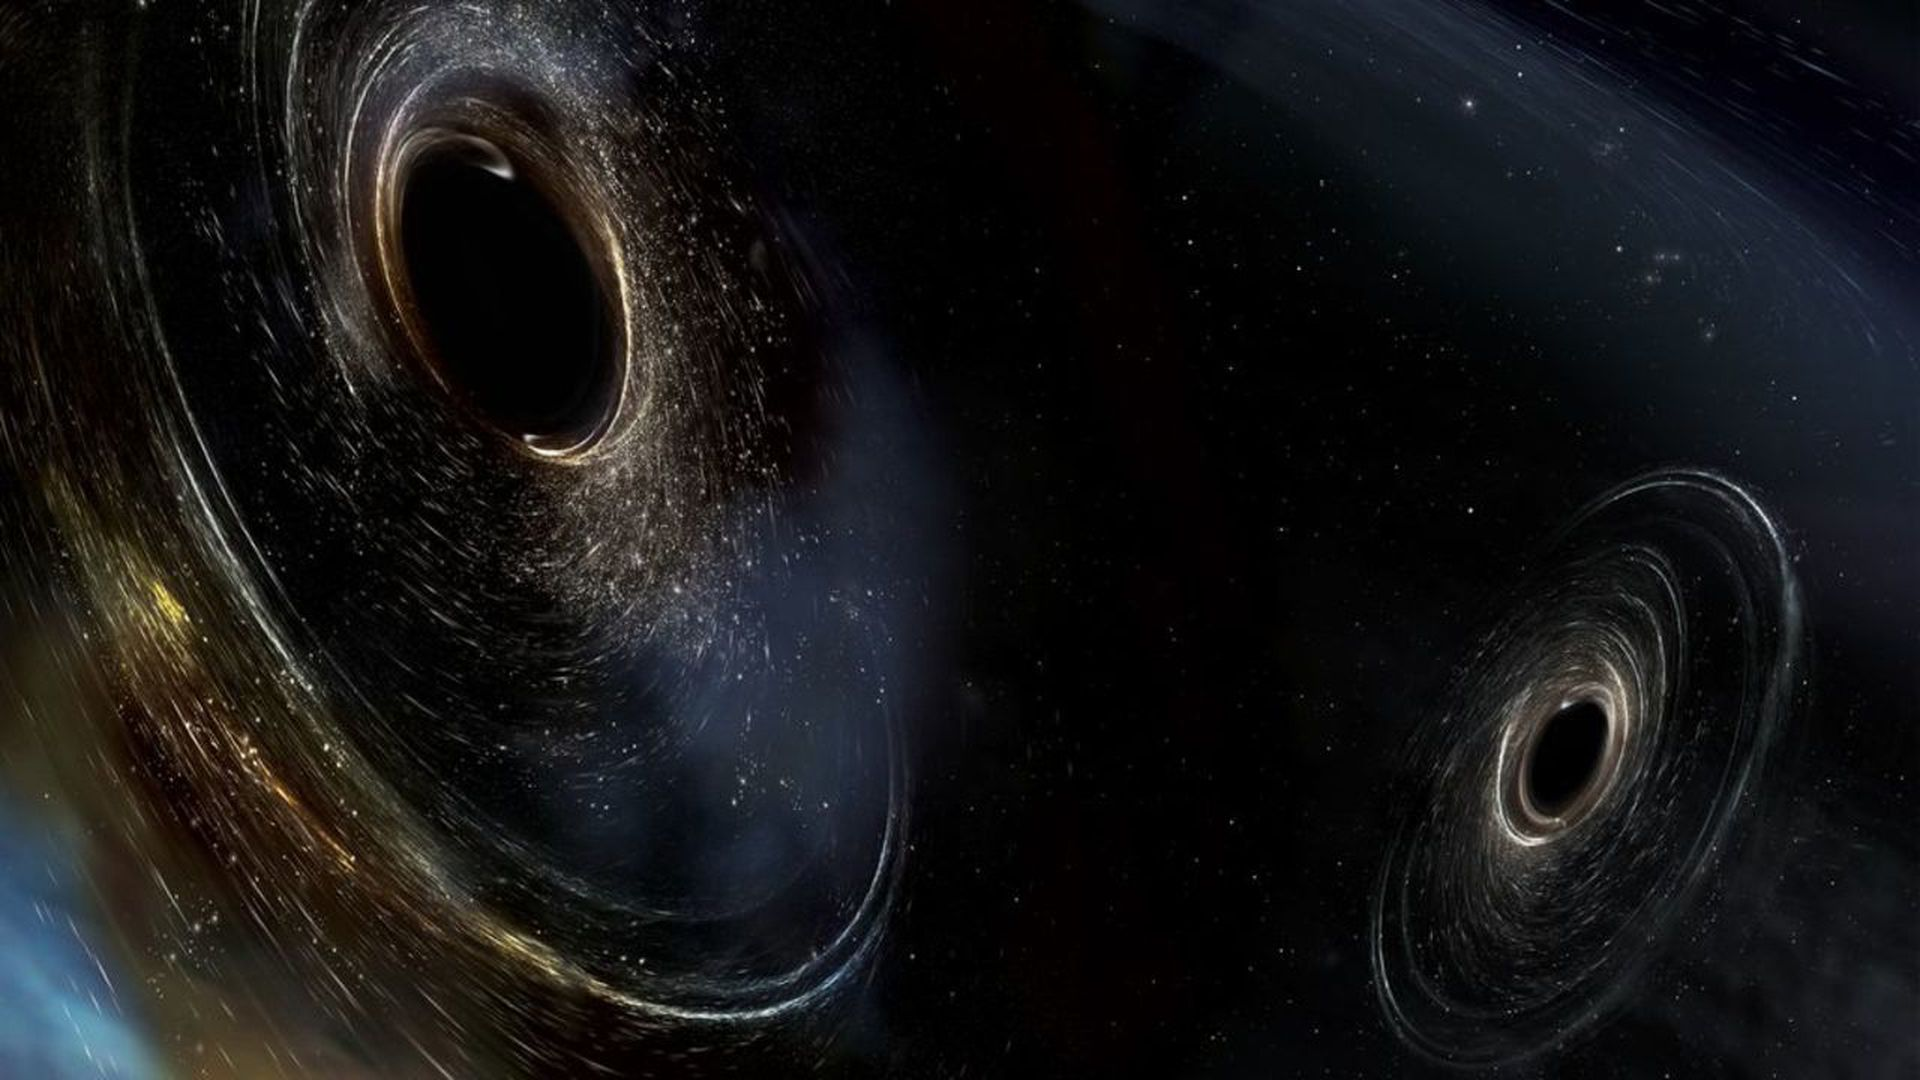 Artist's illustration of two black holes. Photo: LIGO/Caltech/MIT/Sonoma State